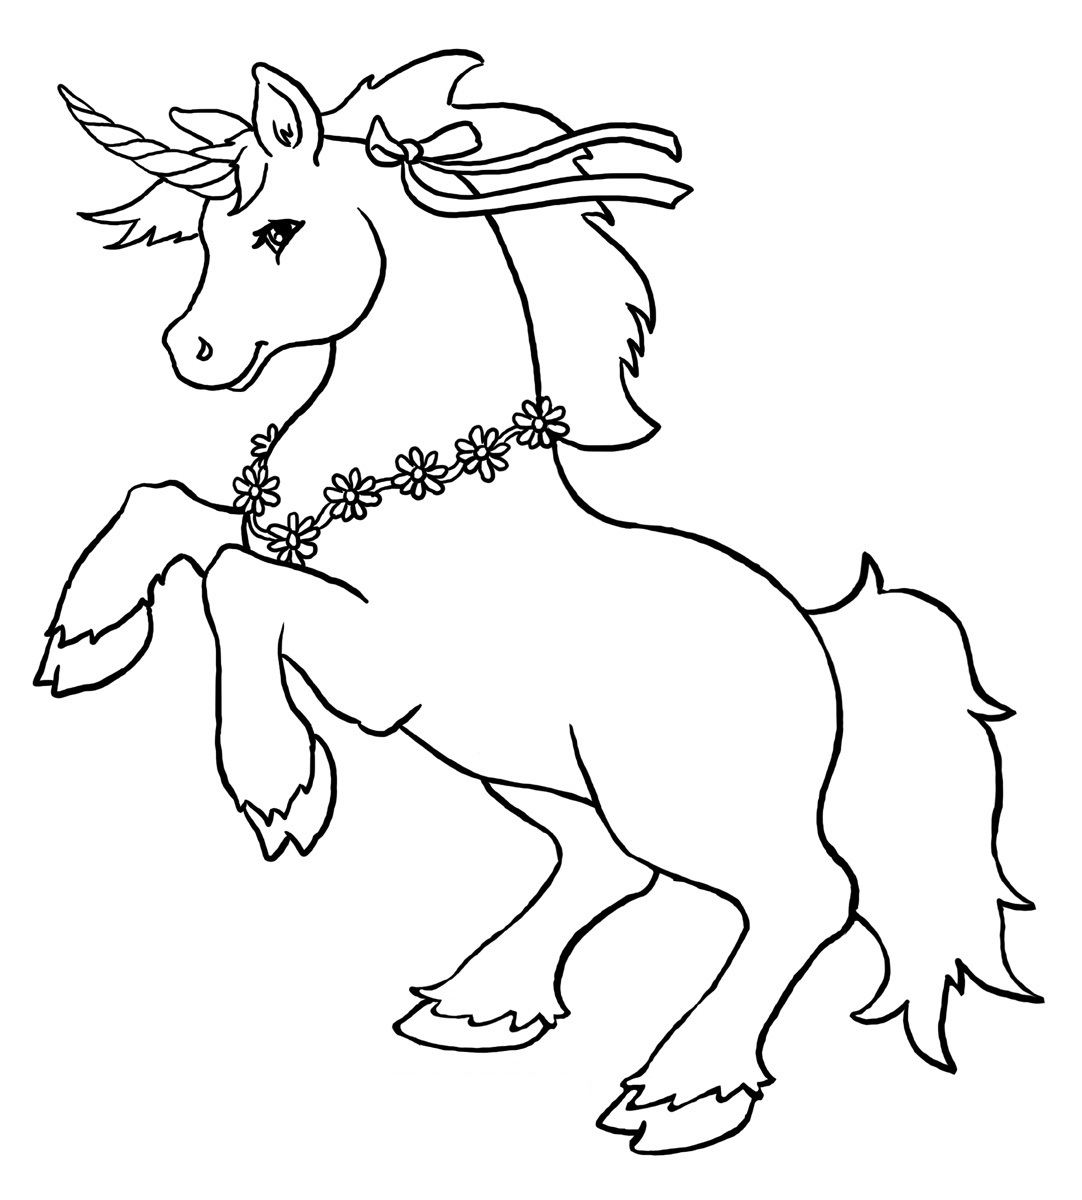 unicorn printable coloring pages - photo#1